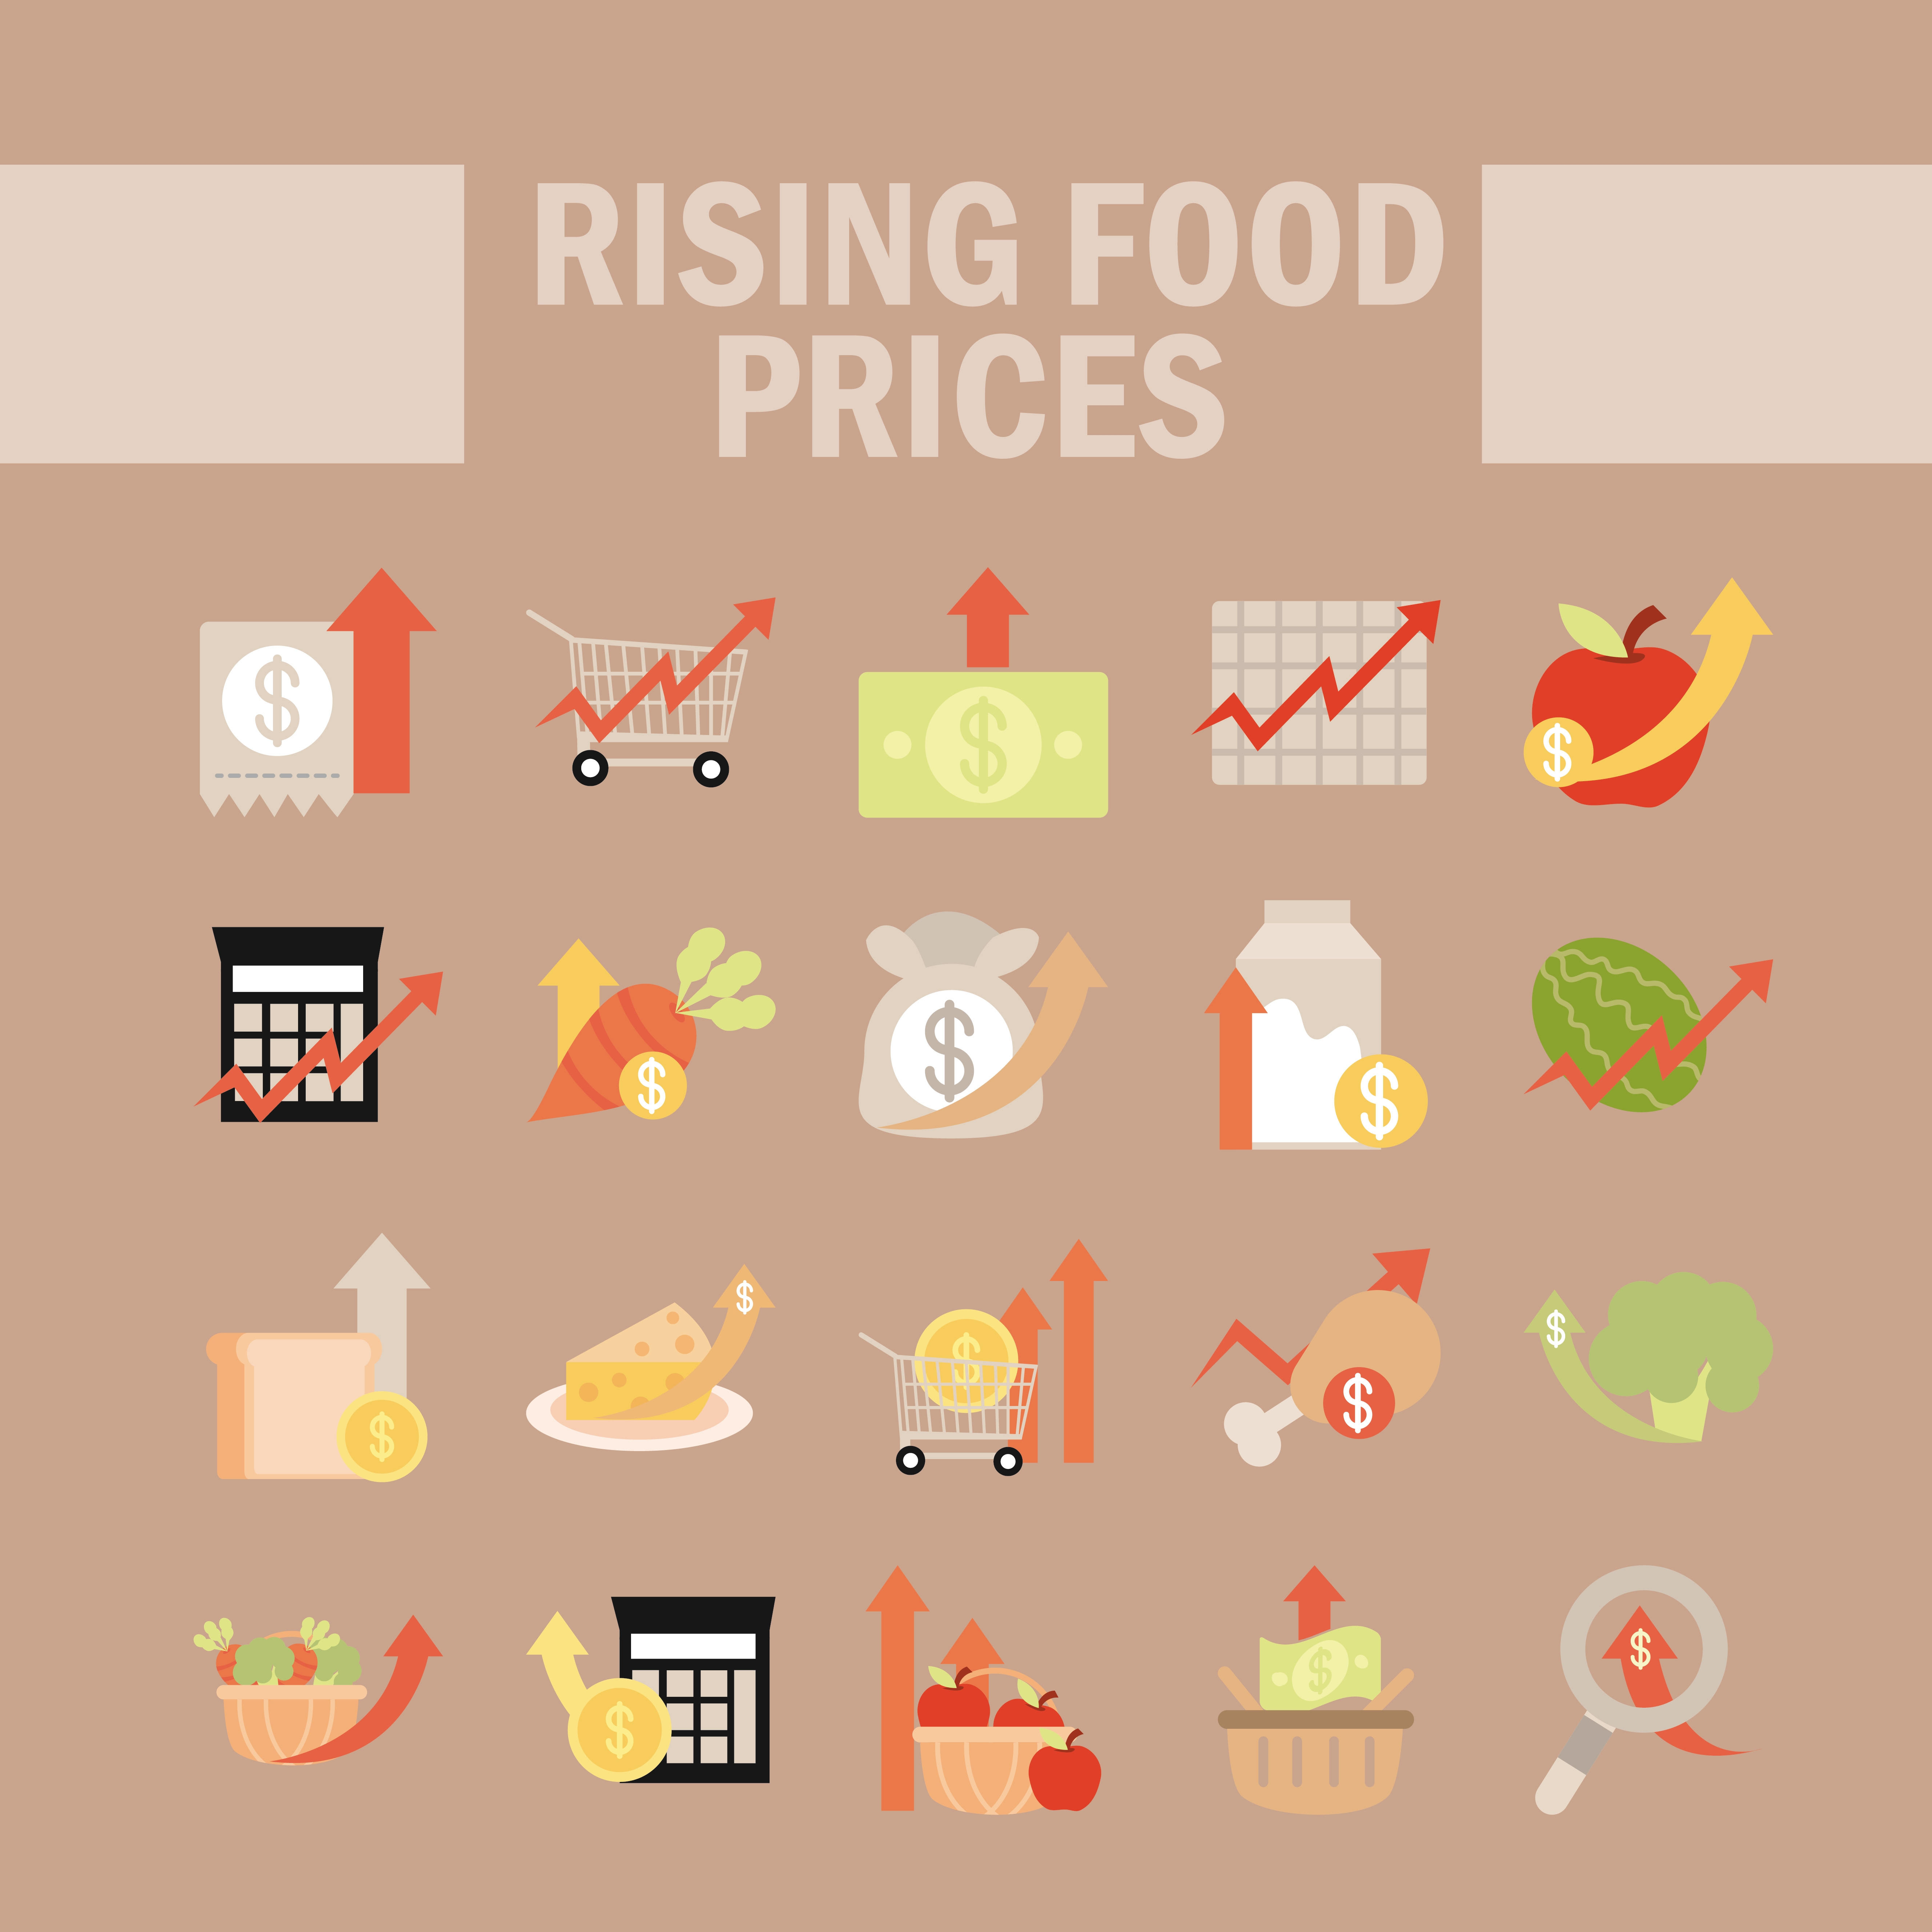 Rising food prices icon set vector